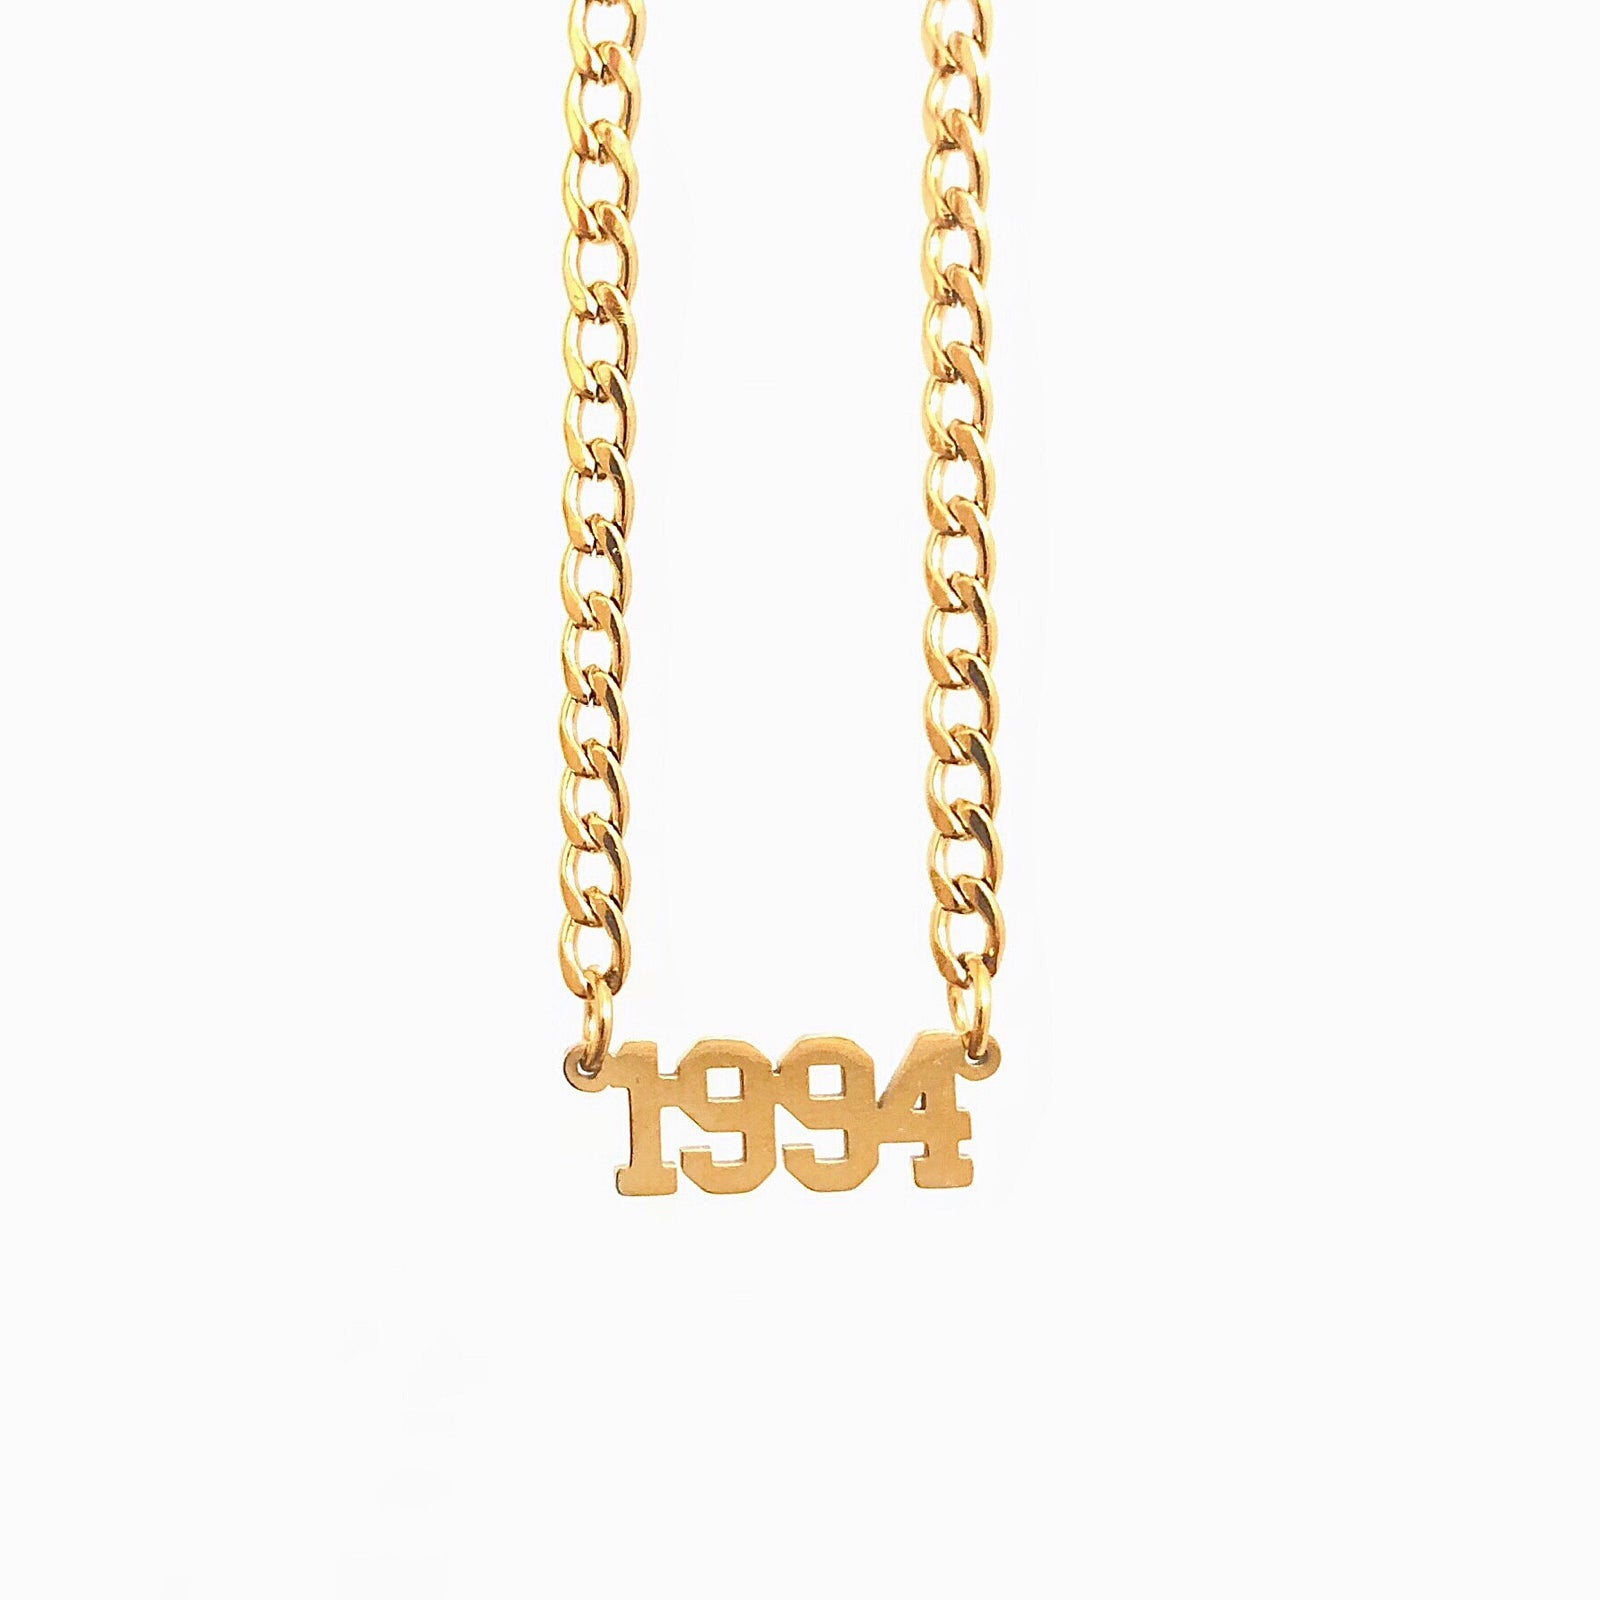 Birth Date Collar in Gold - Neckontheline